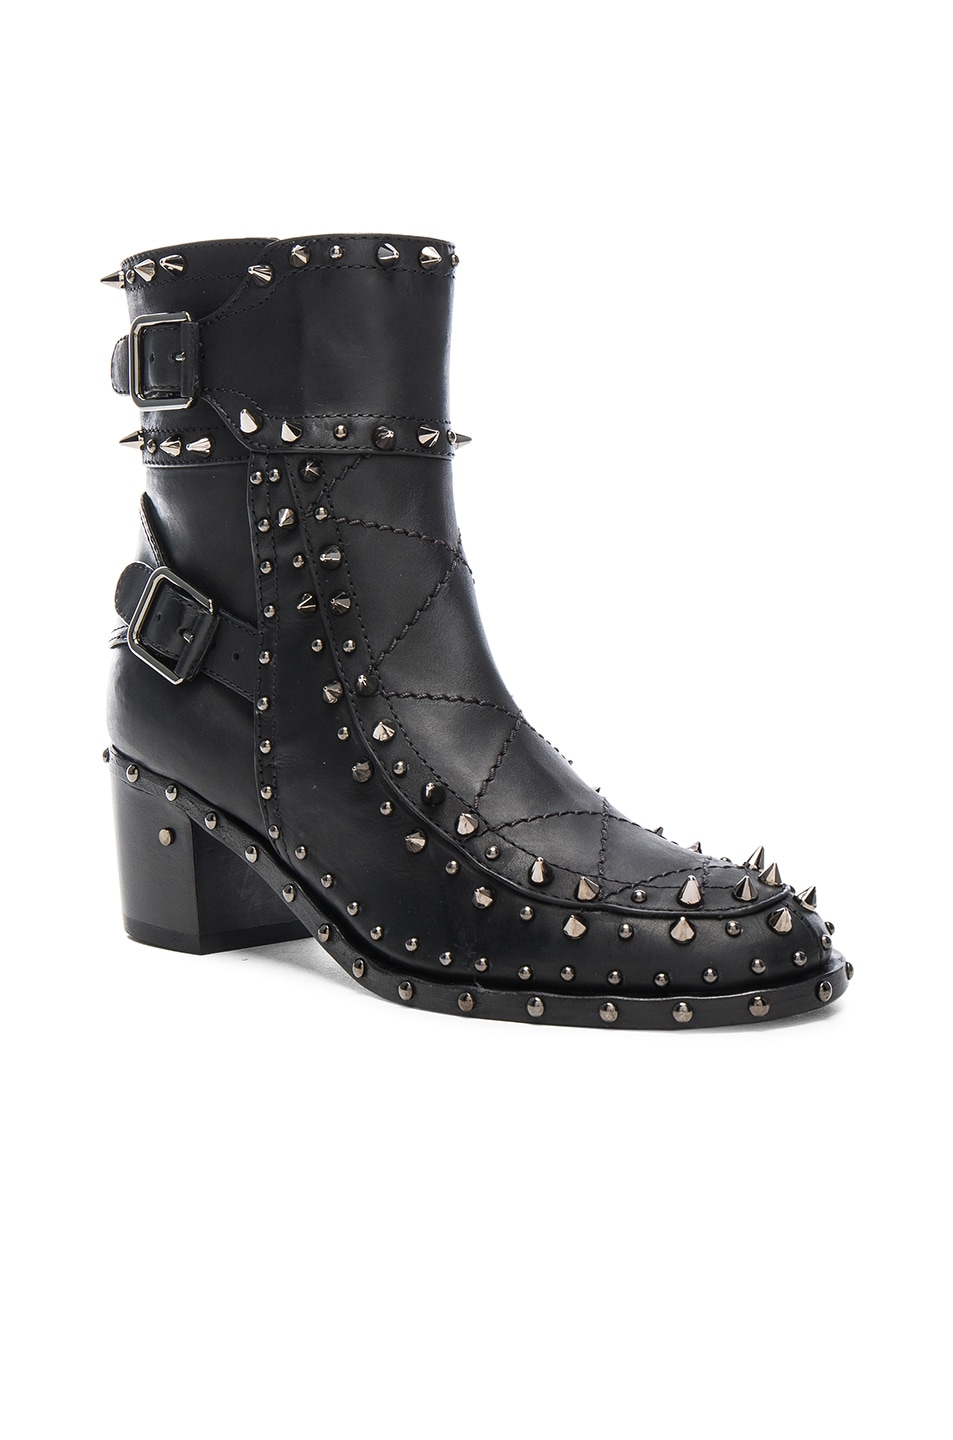 Image 2 of Laurence Dacade Badely Leather Boots in Black & Rutenium